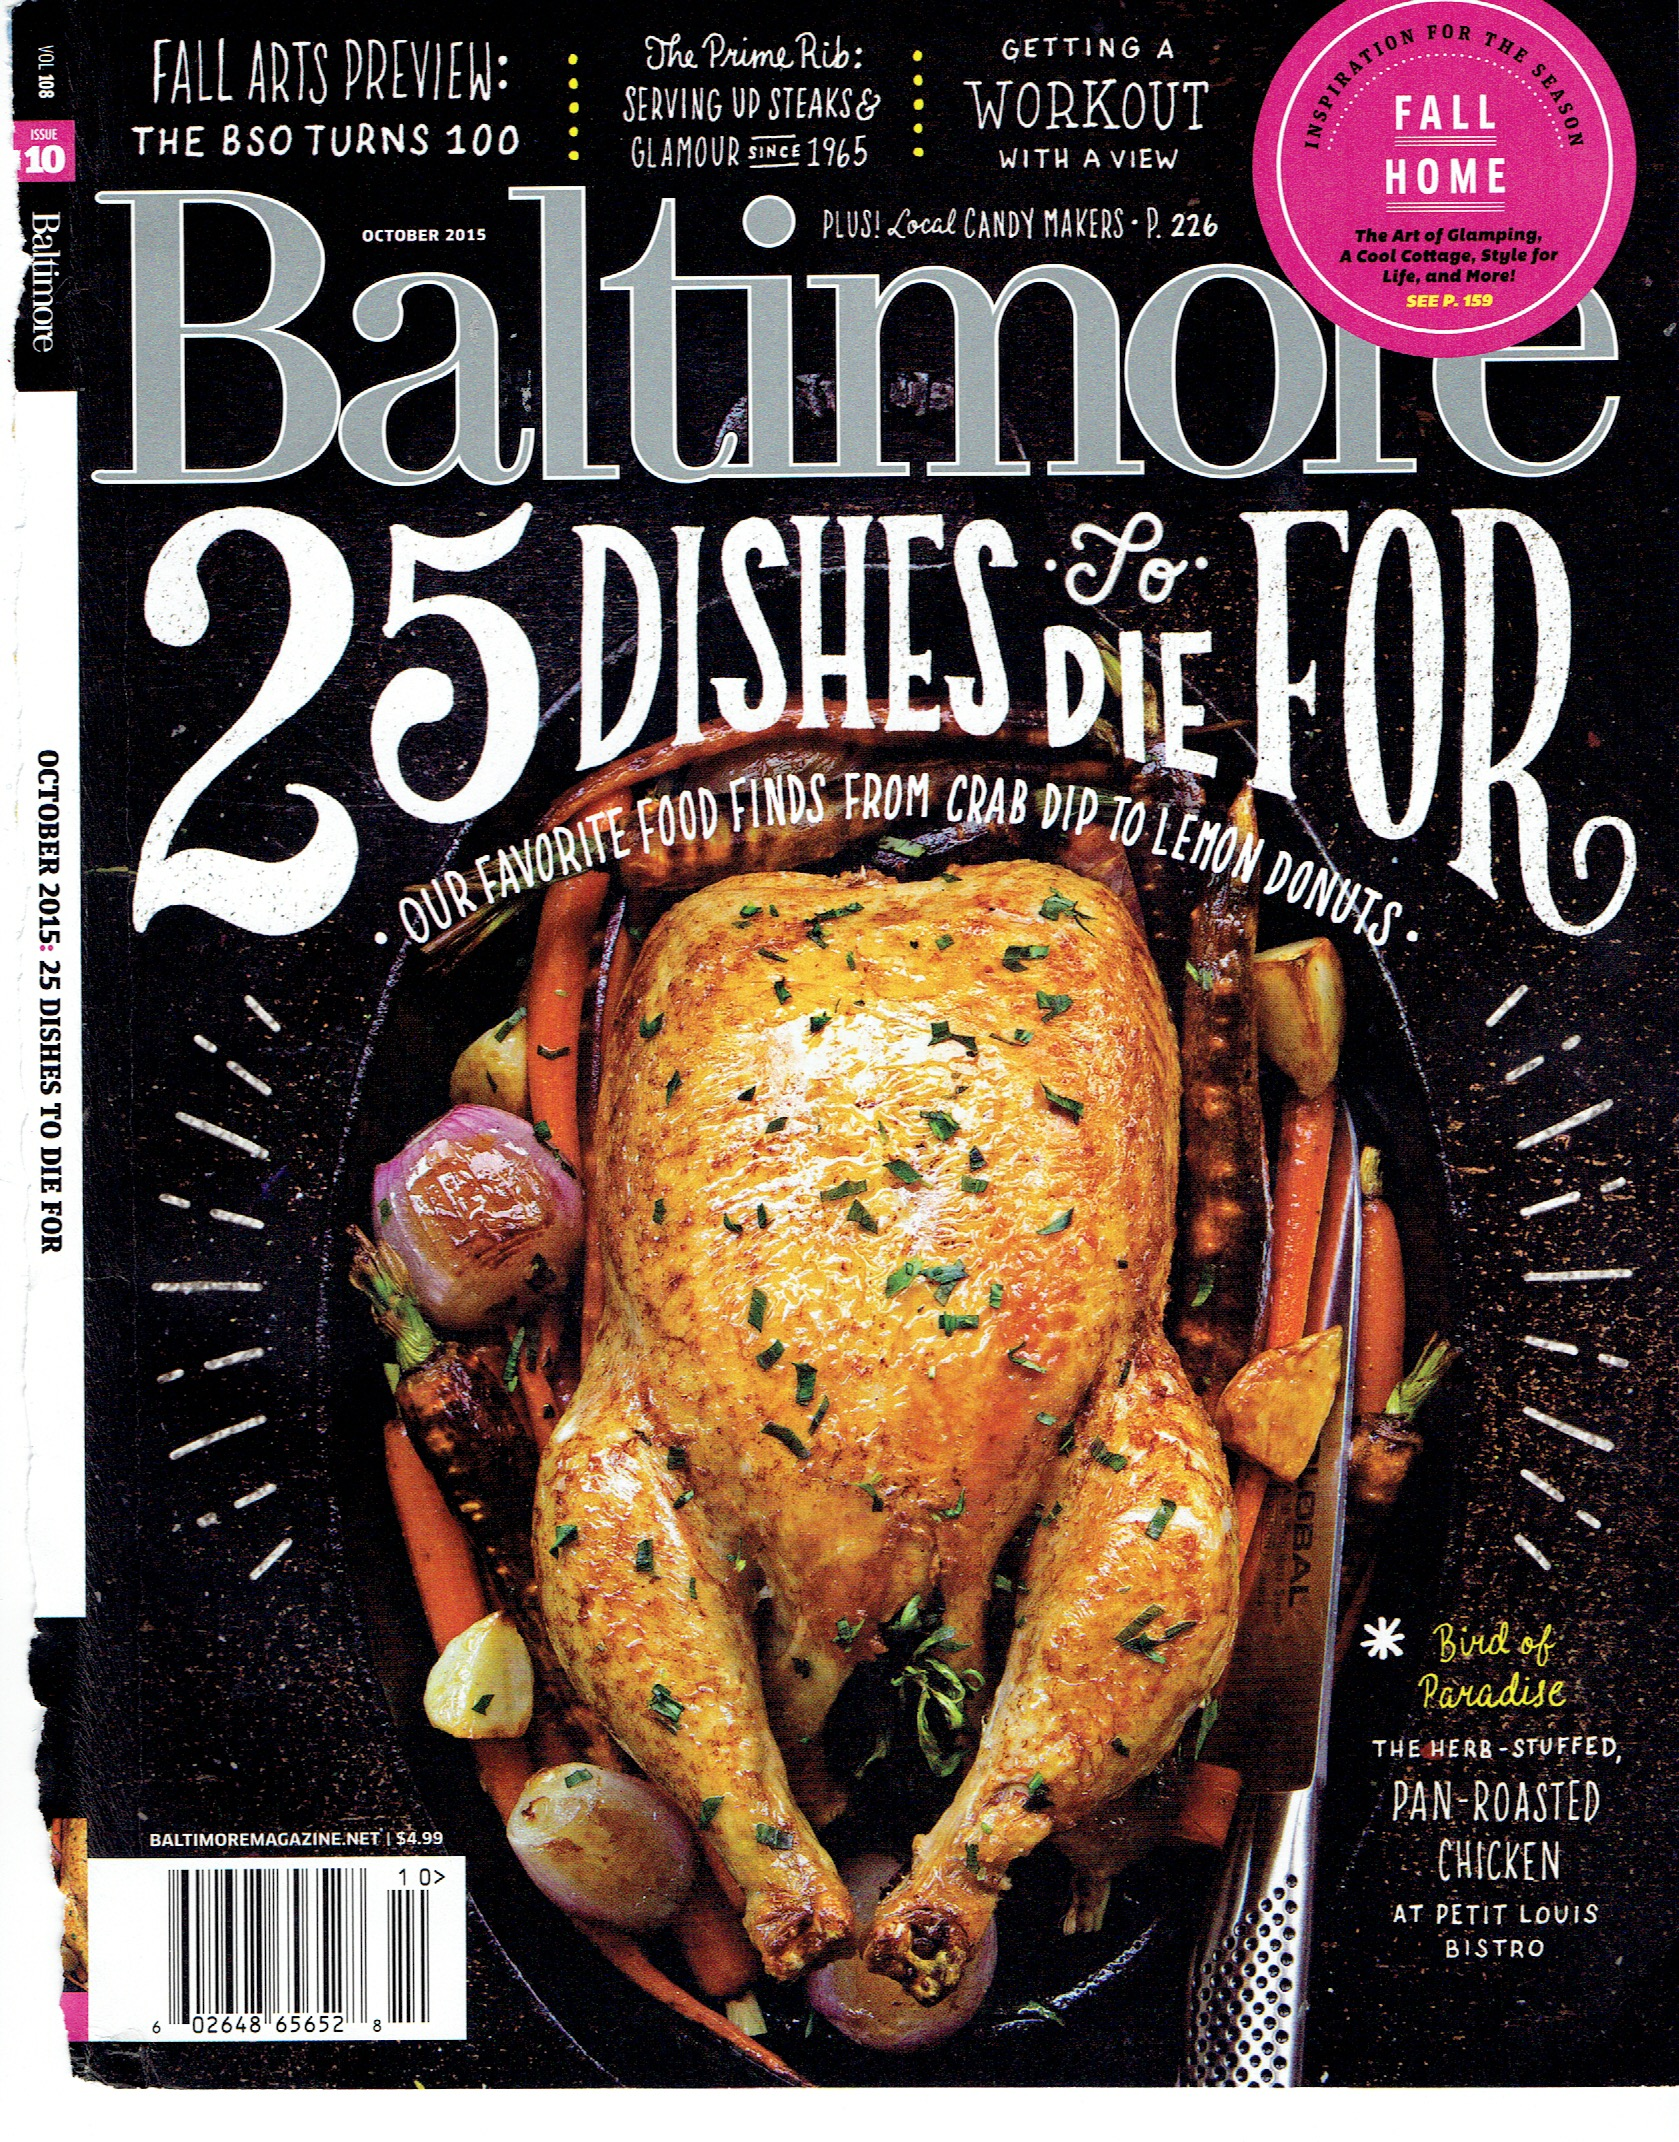 Baltimore Mag cover